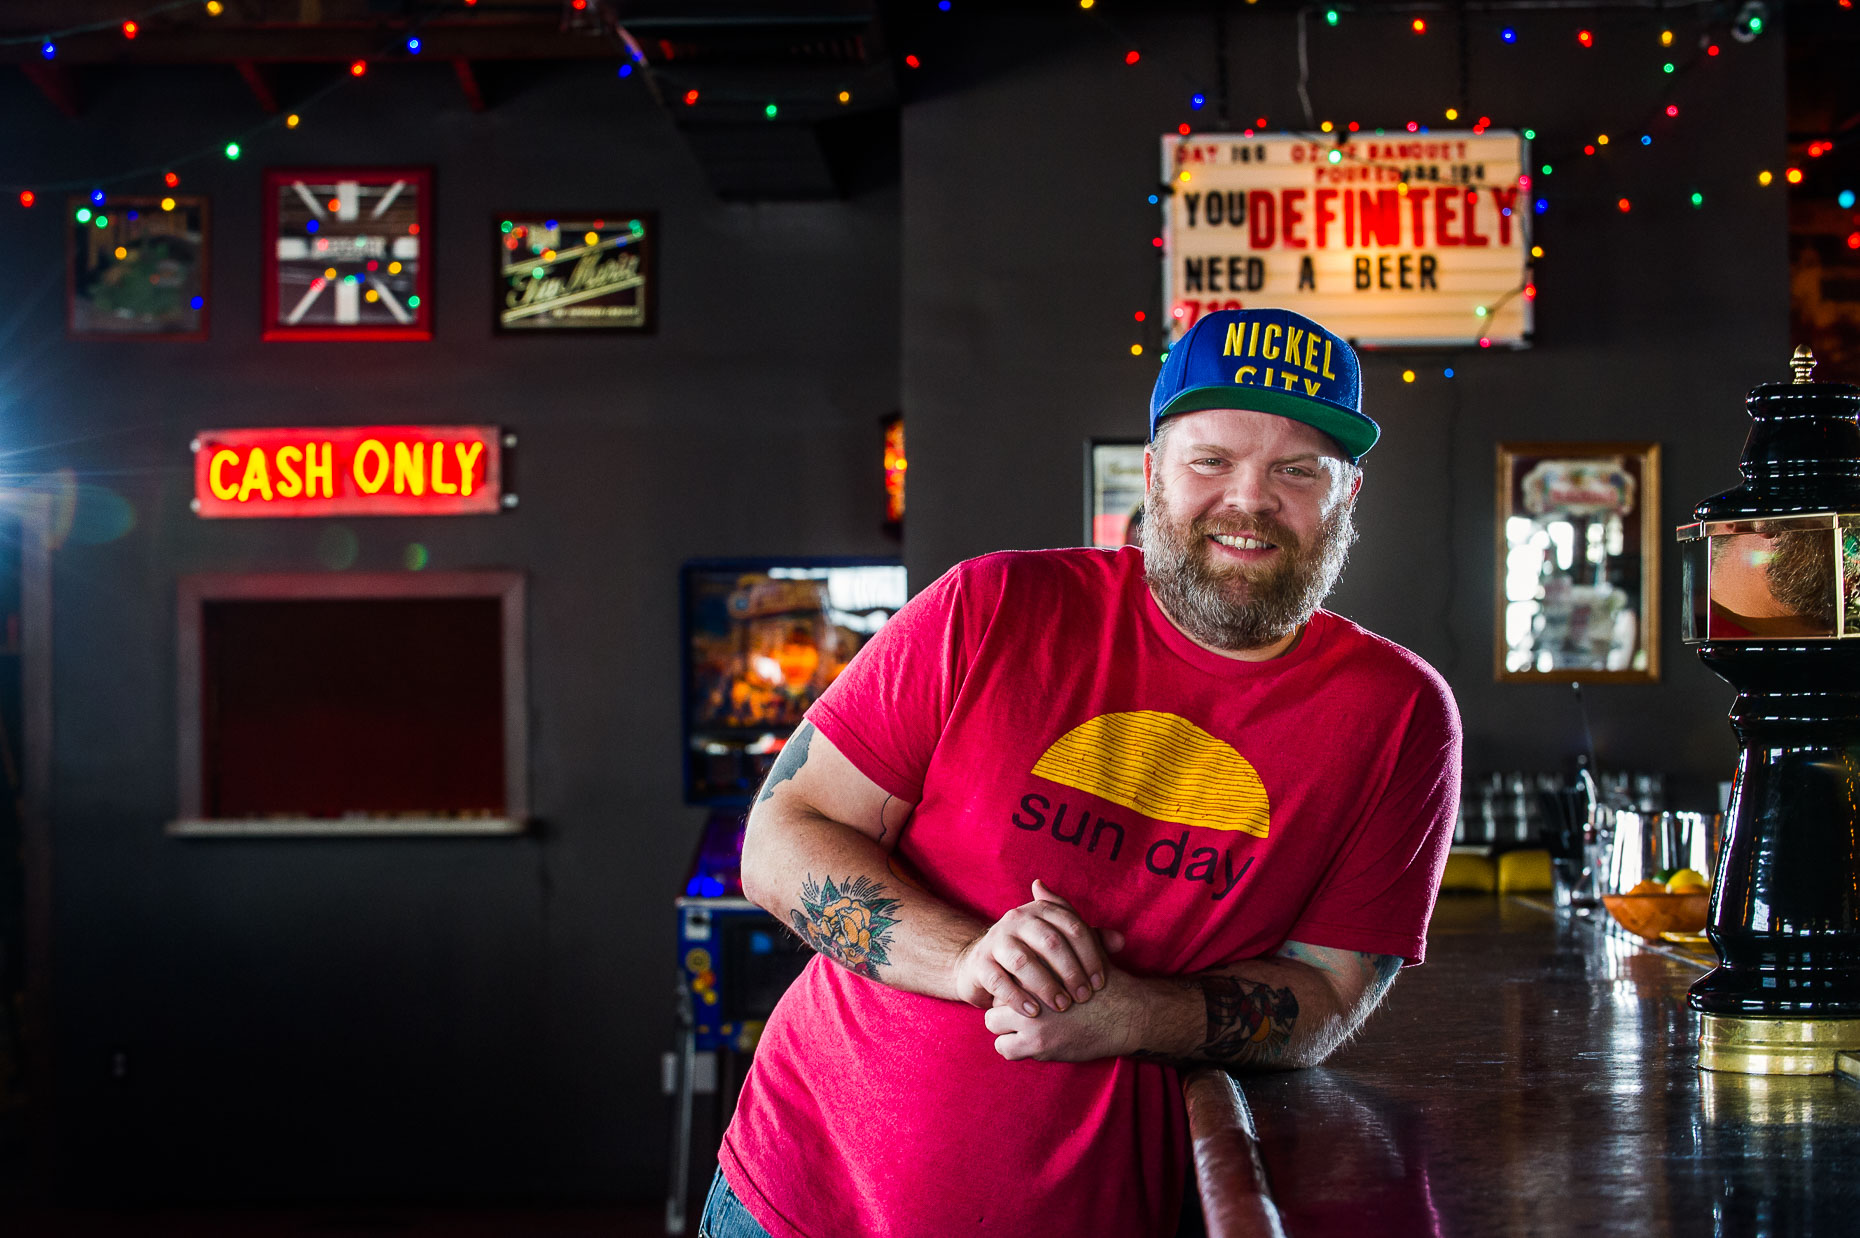 aaron-ingrao-keepers-of-the-craft-cocktails-across-america-nickel-city-austin-272-Edit